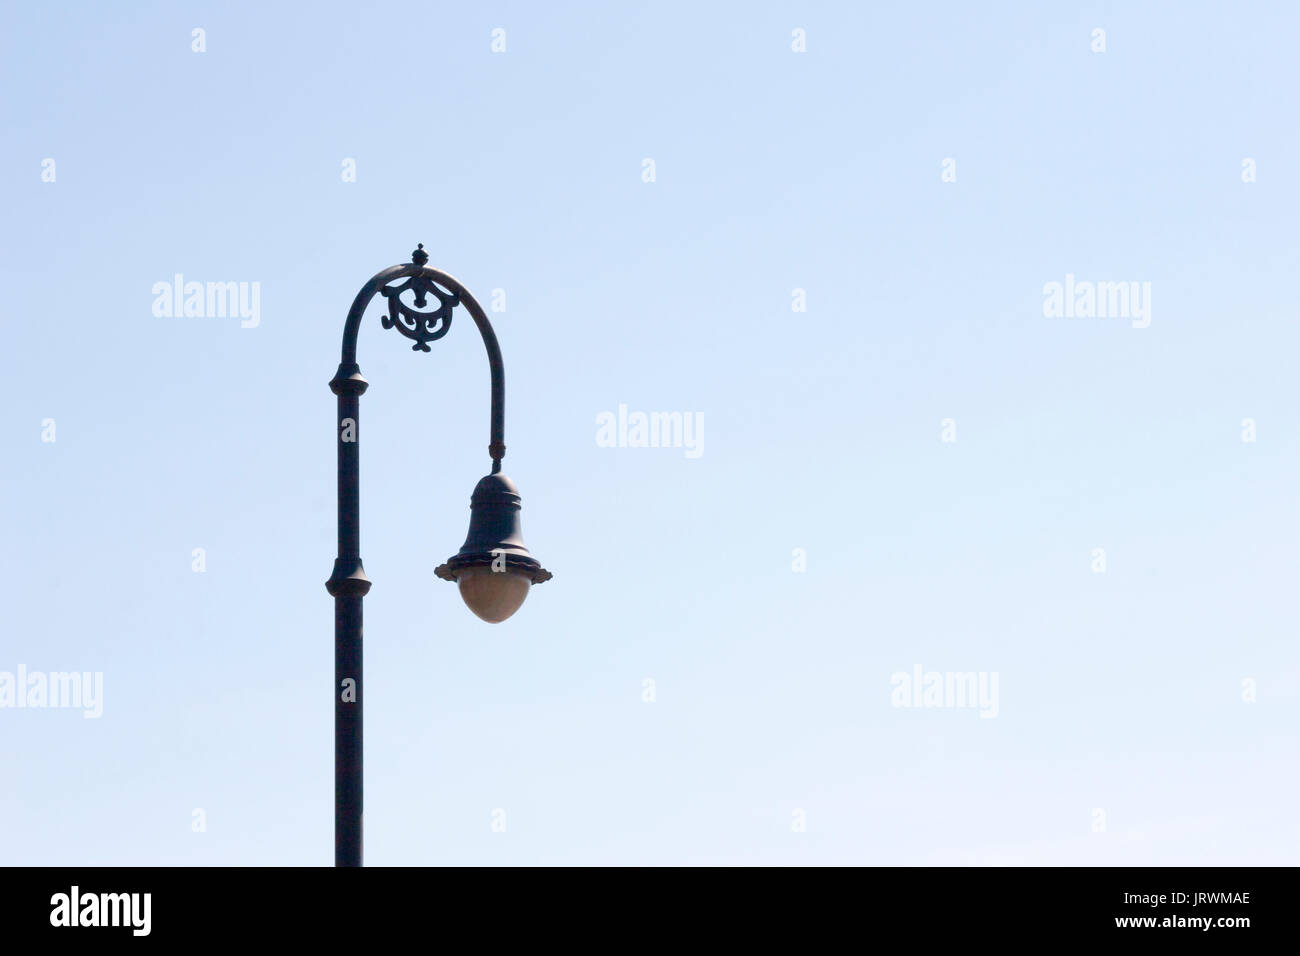 Elegant lamppost isolated against a cloudless pale blue sky - Stock Image